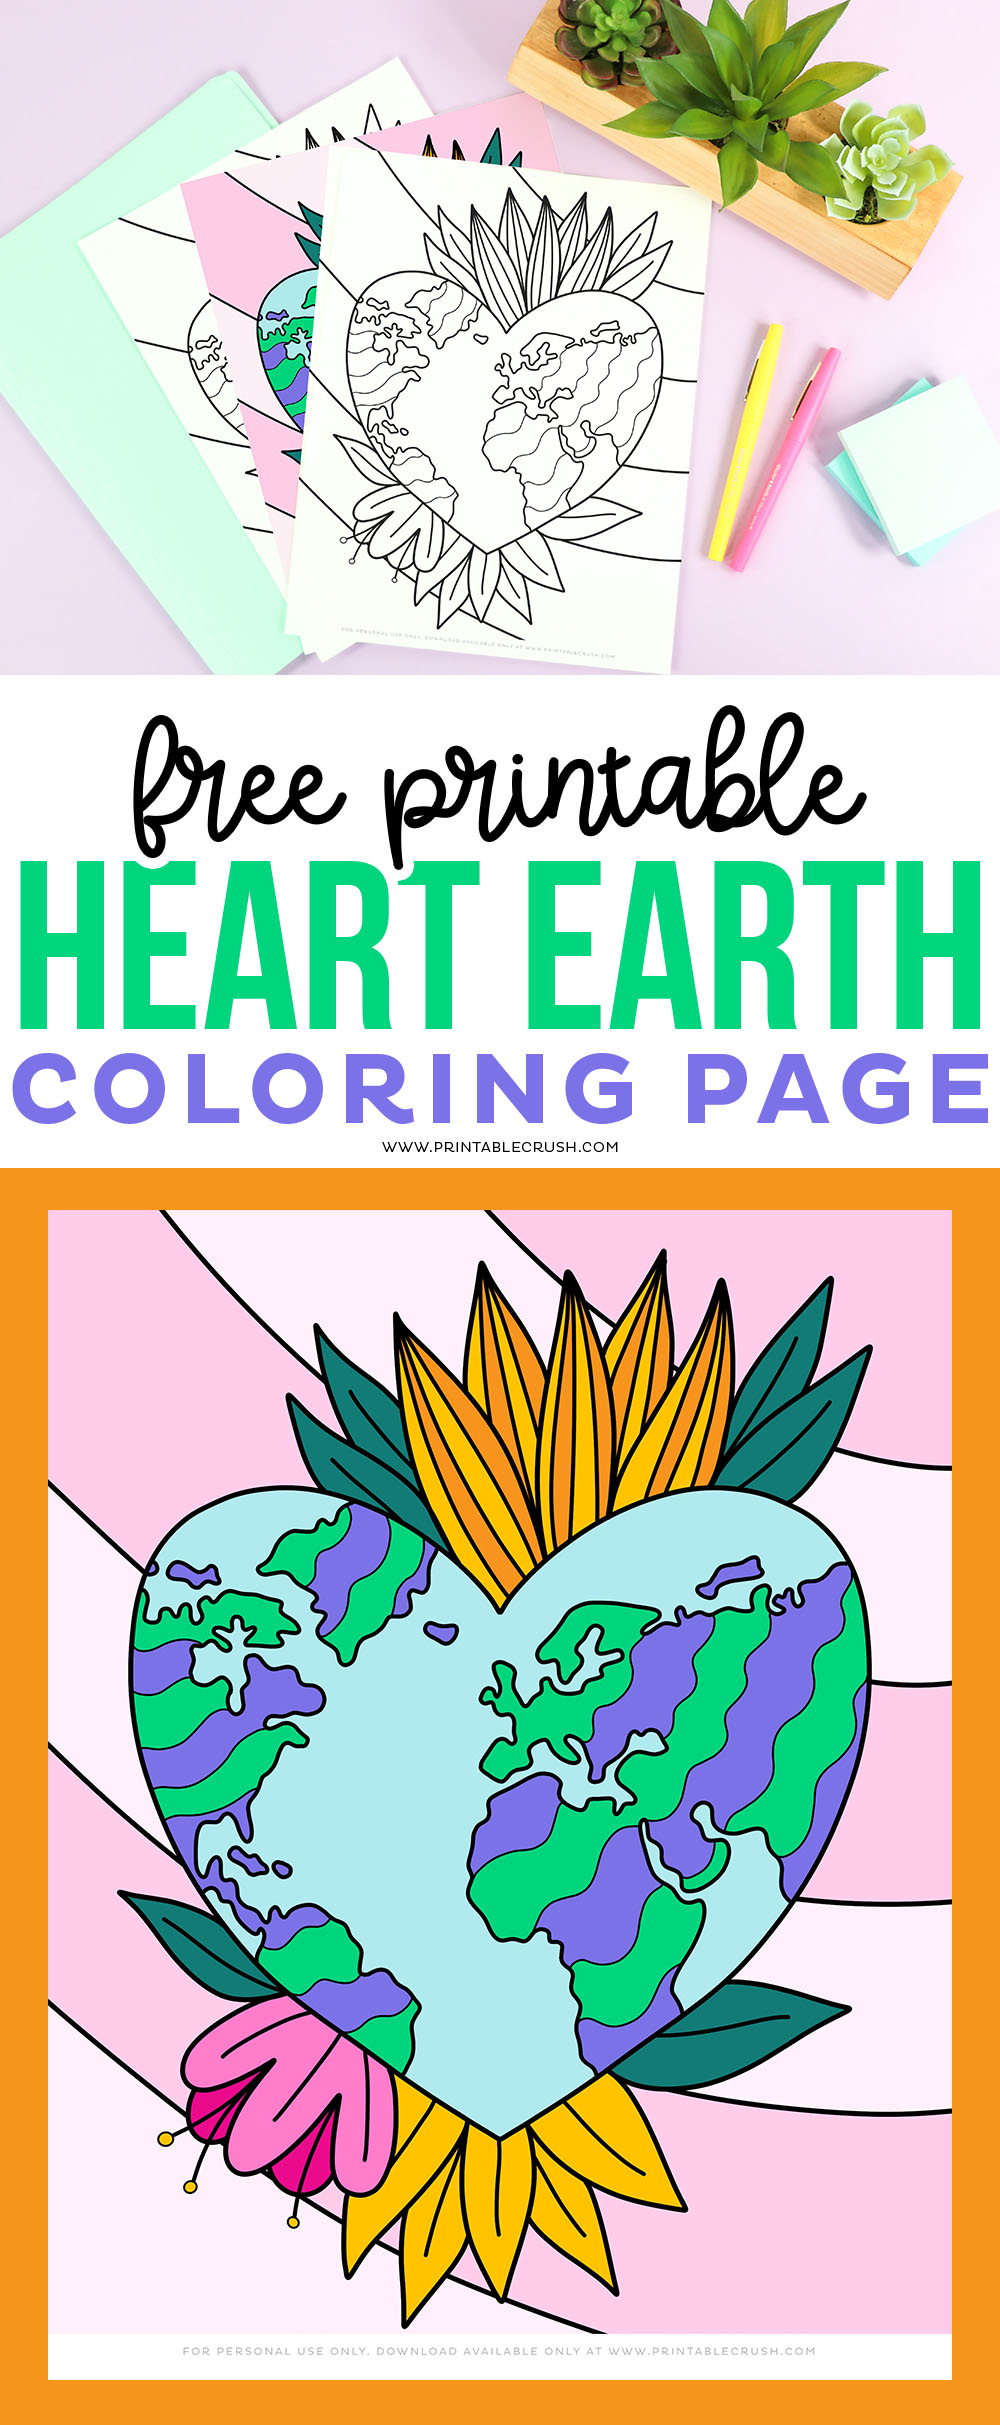 Free Printable Earth Coloring Page #coloringpage #freeprintable #printablecrush #earthcoloringpage #handdrawn